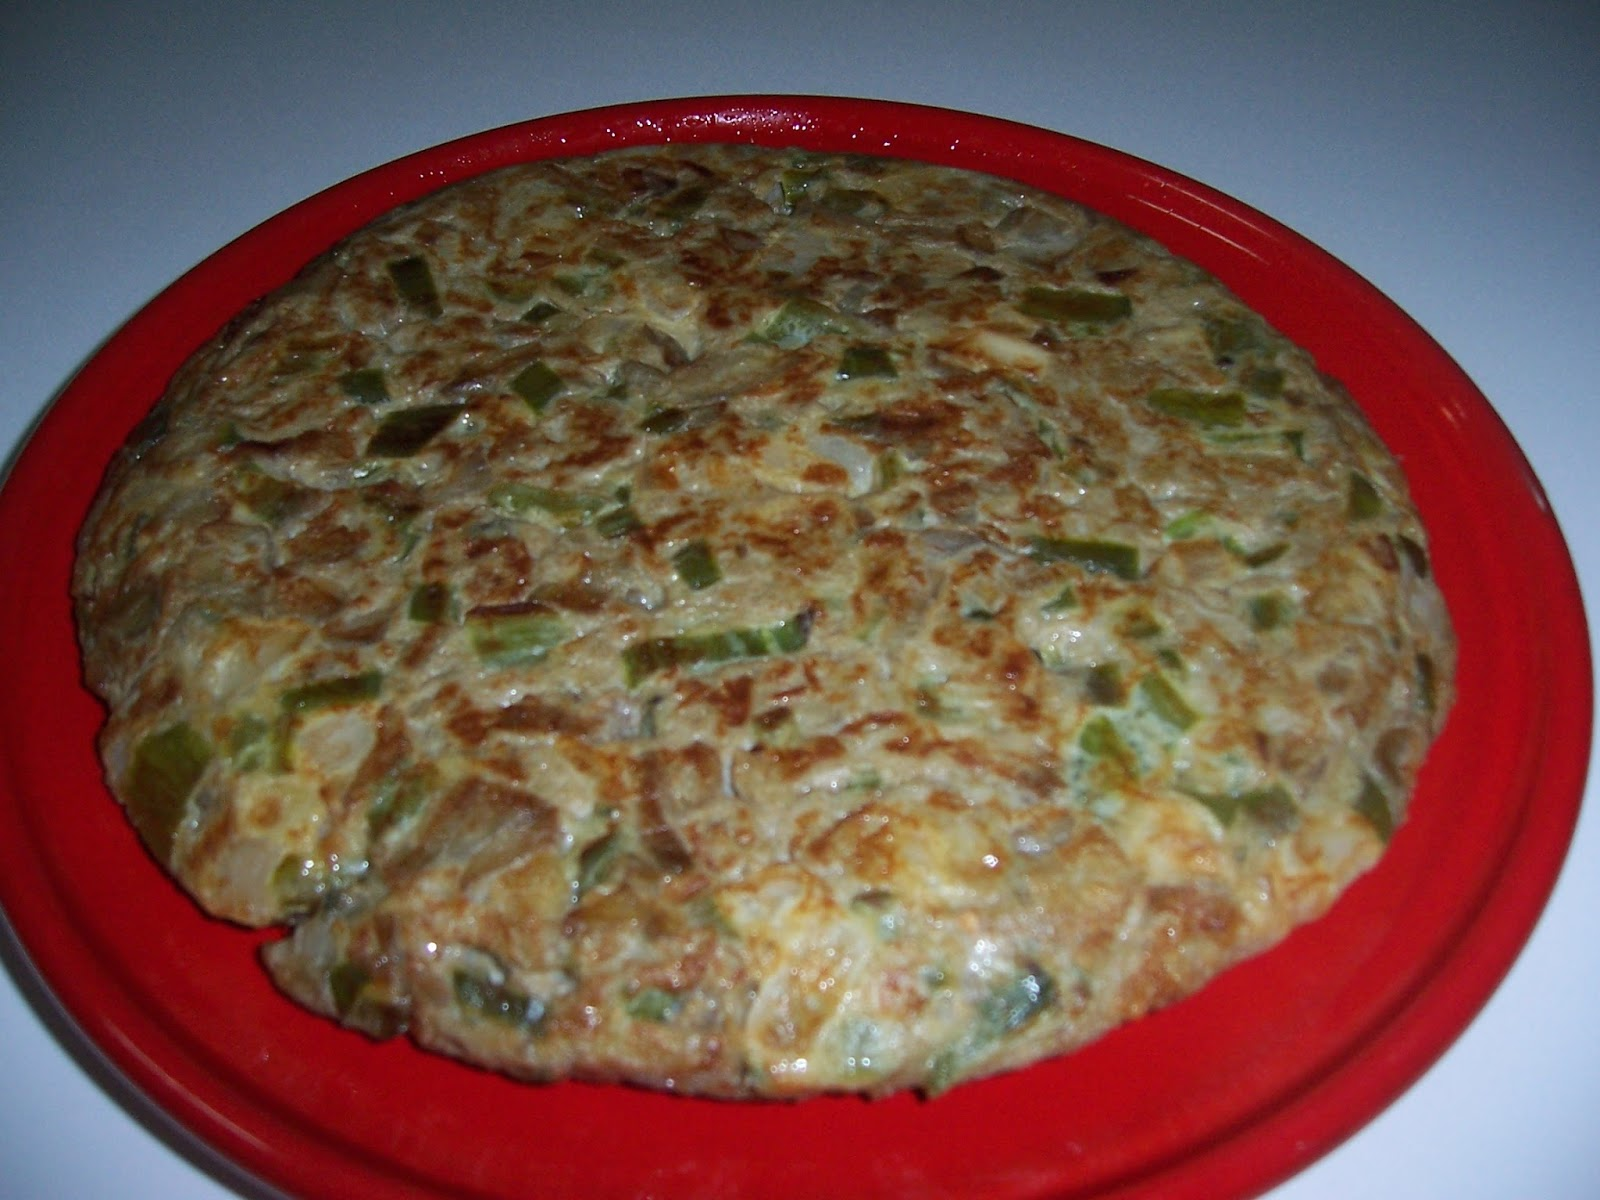 Pucheros de barro tortilla vegetariana - Pucheros de barro ...